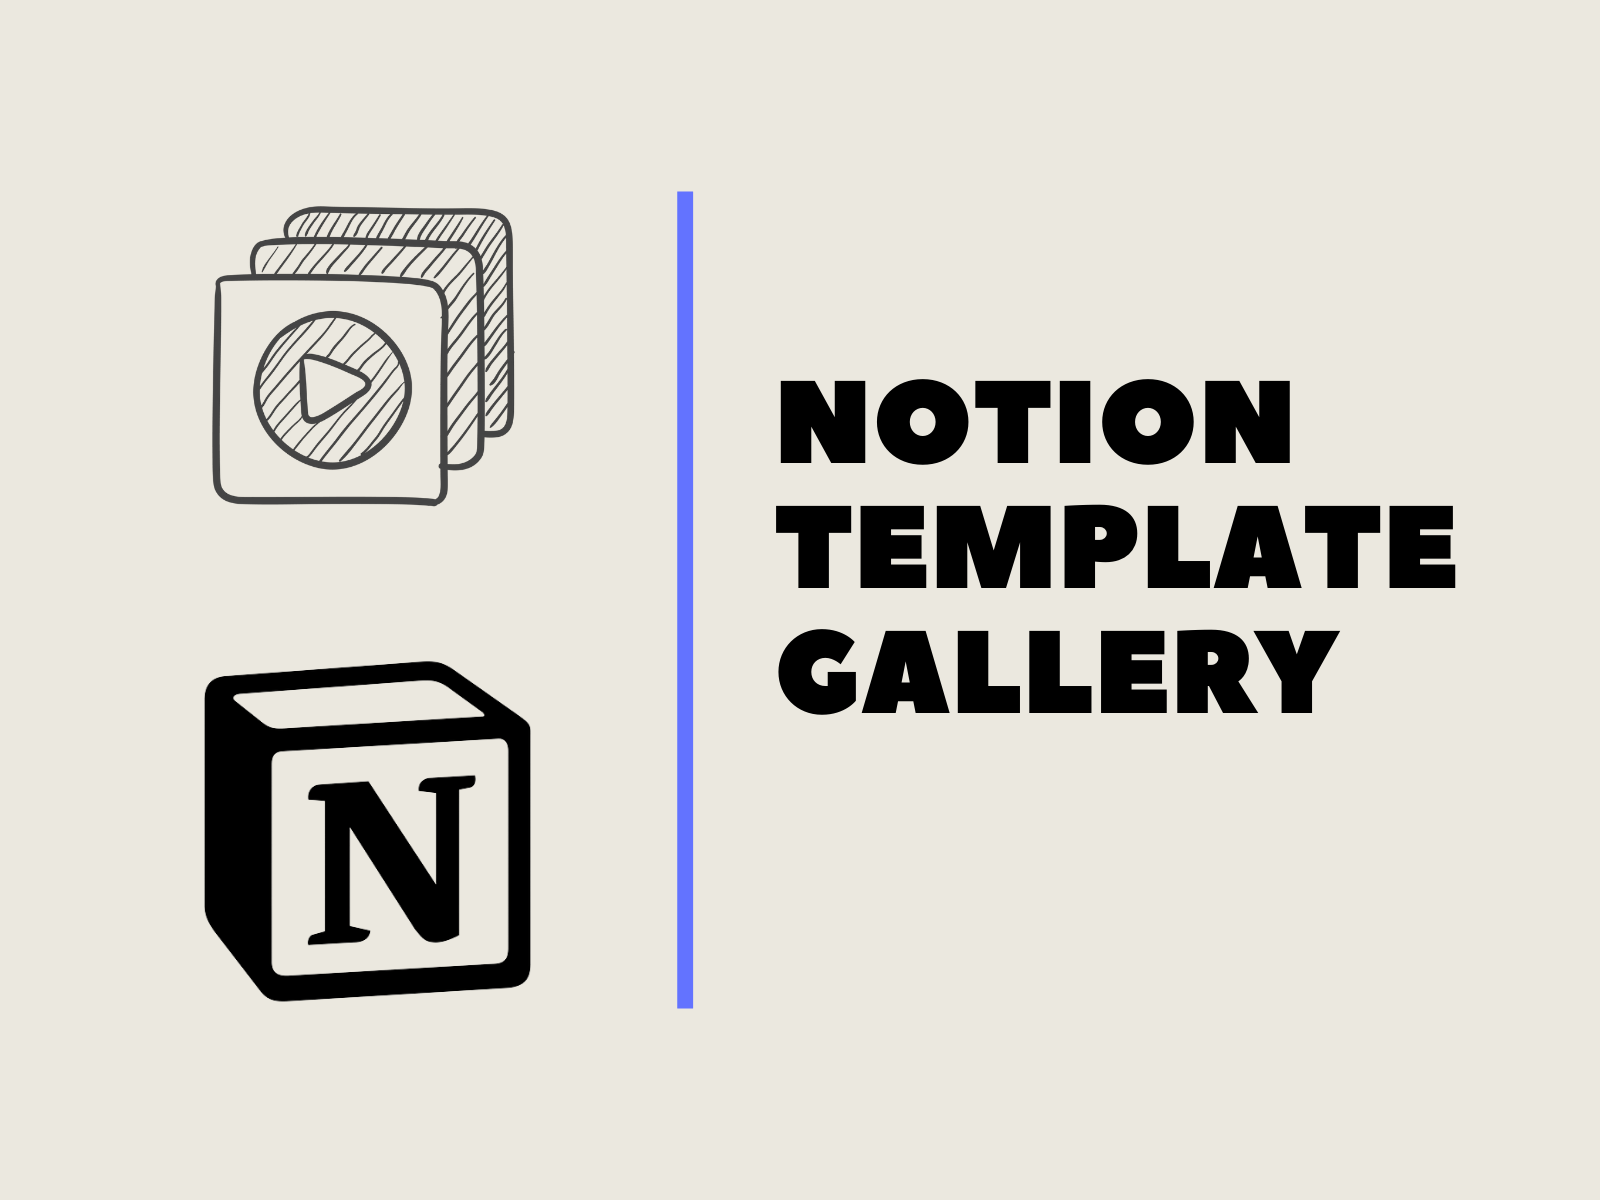 11 Free Notion Templates For A Productive And Healthy Life Templates Finally decided to switch from paper bullet journal to a digital life wiki, and i'm feeling so good about my home page! free notion templates for a productive